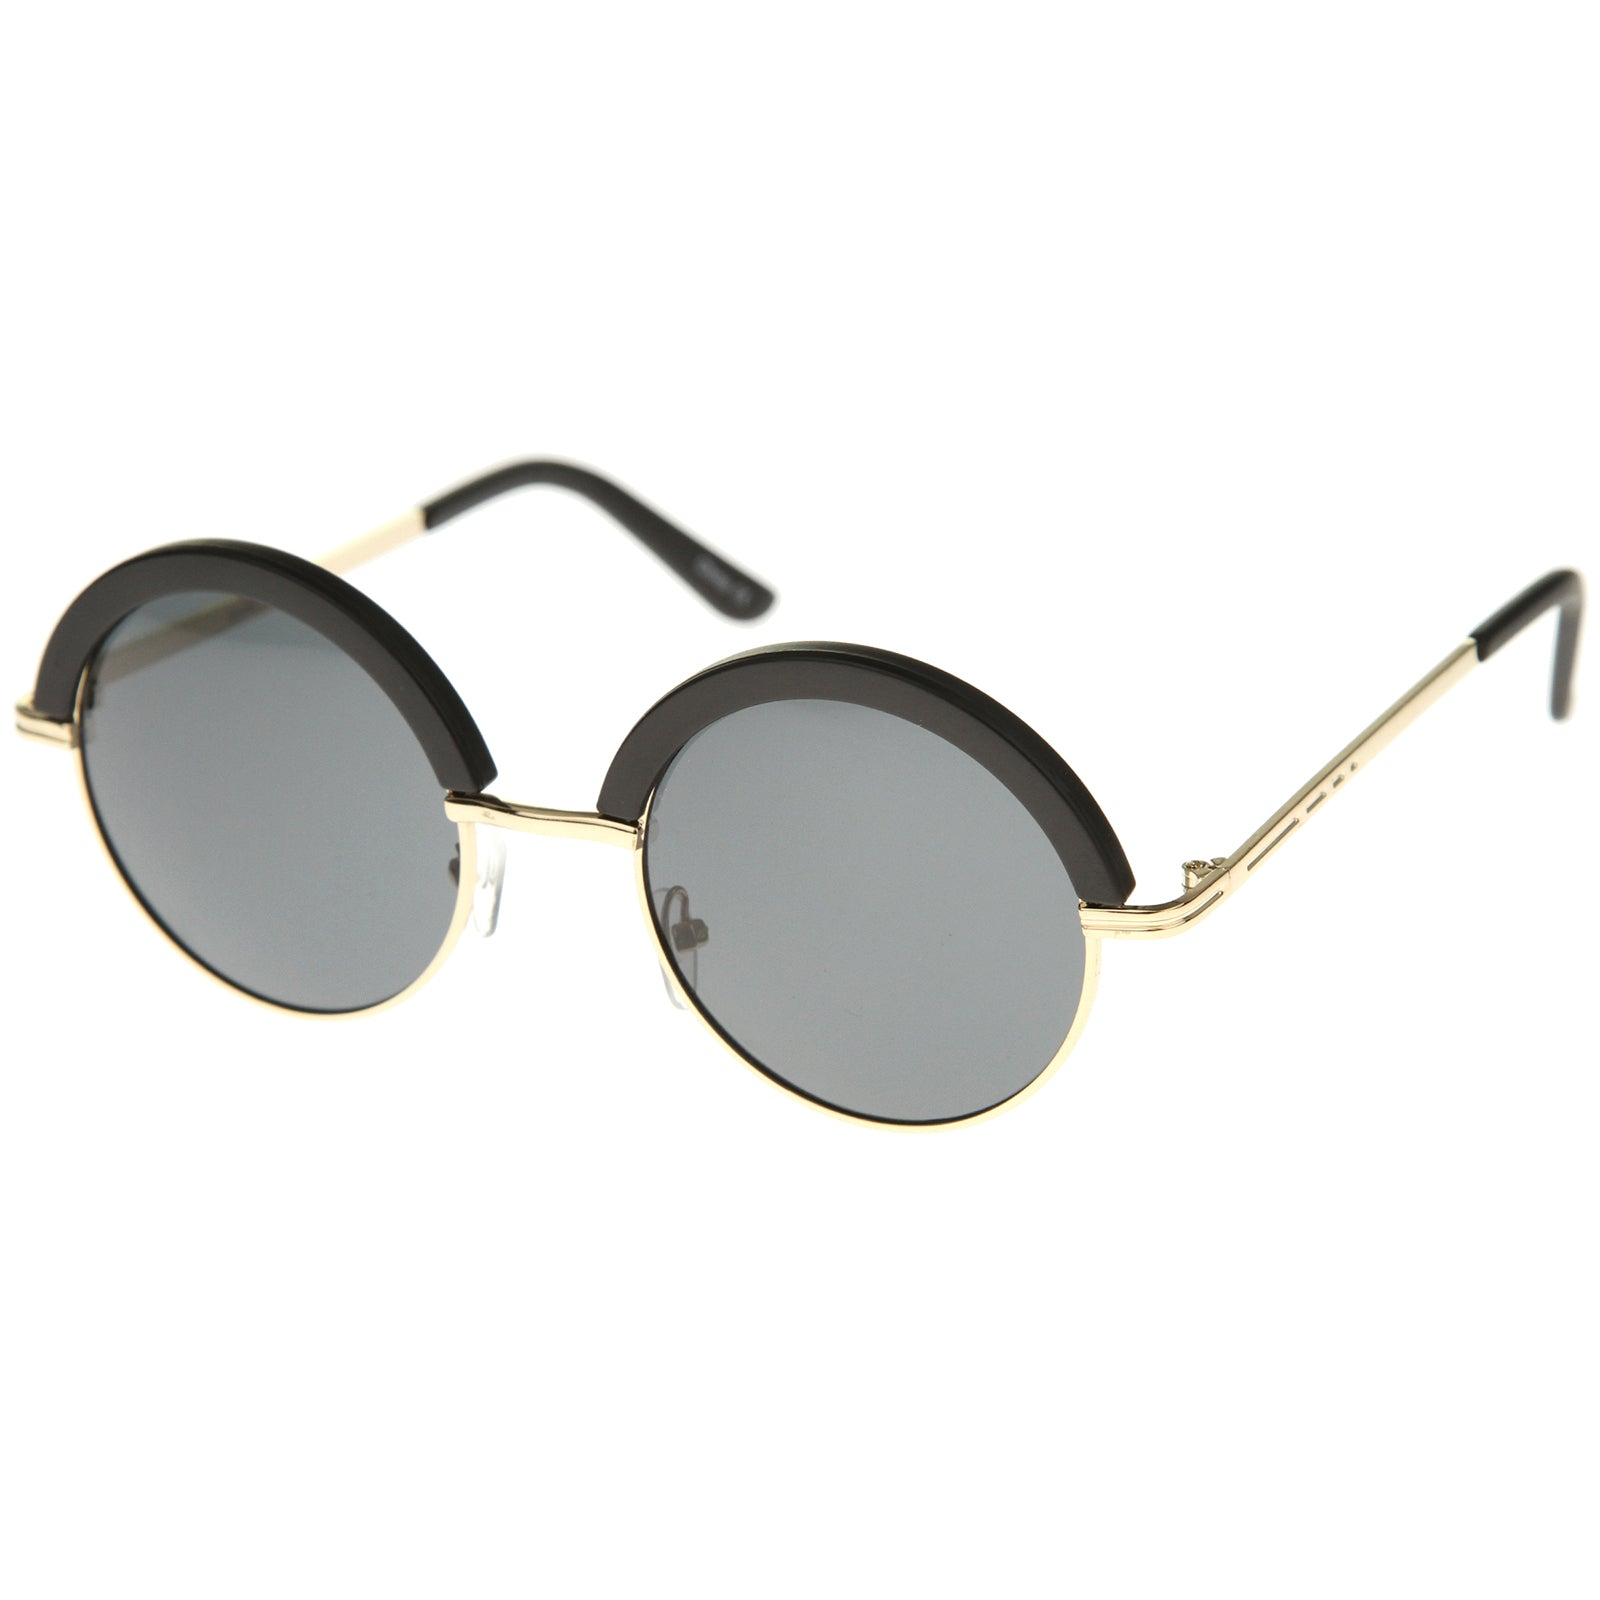 Womens Metal Round Sunglasses With UV400 Protected Composite Lens - sunglass.la - 2